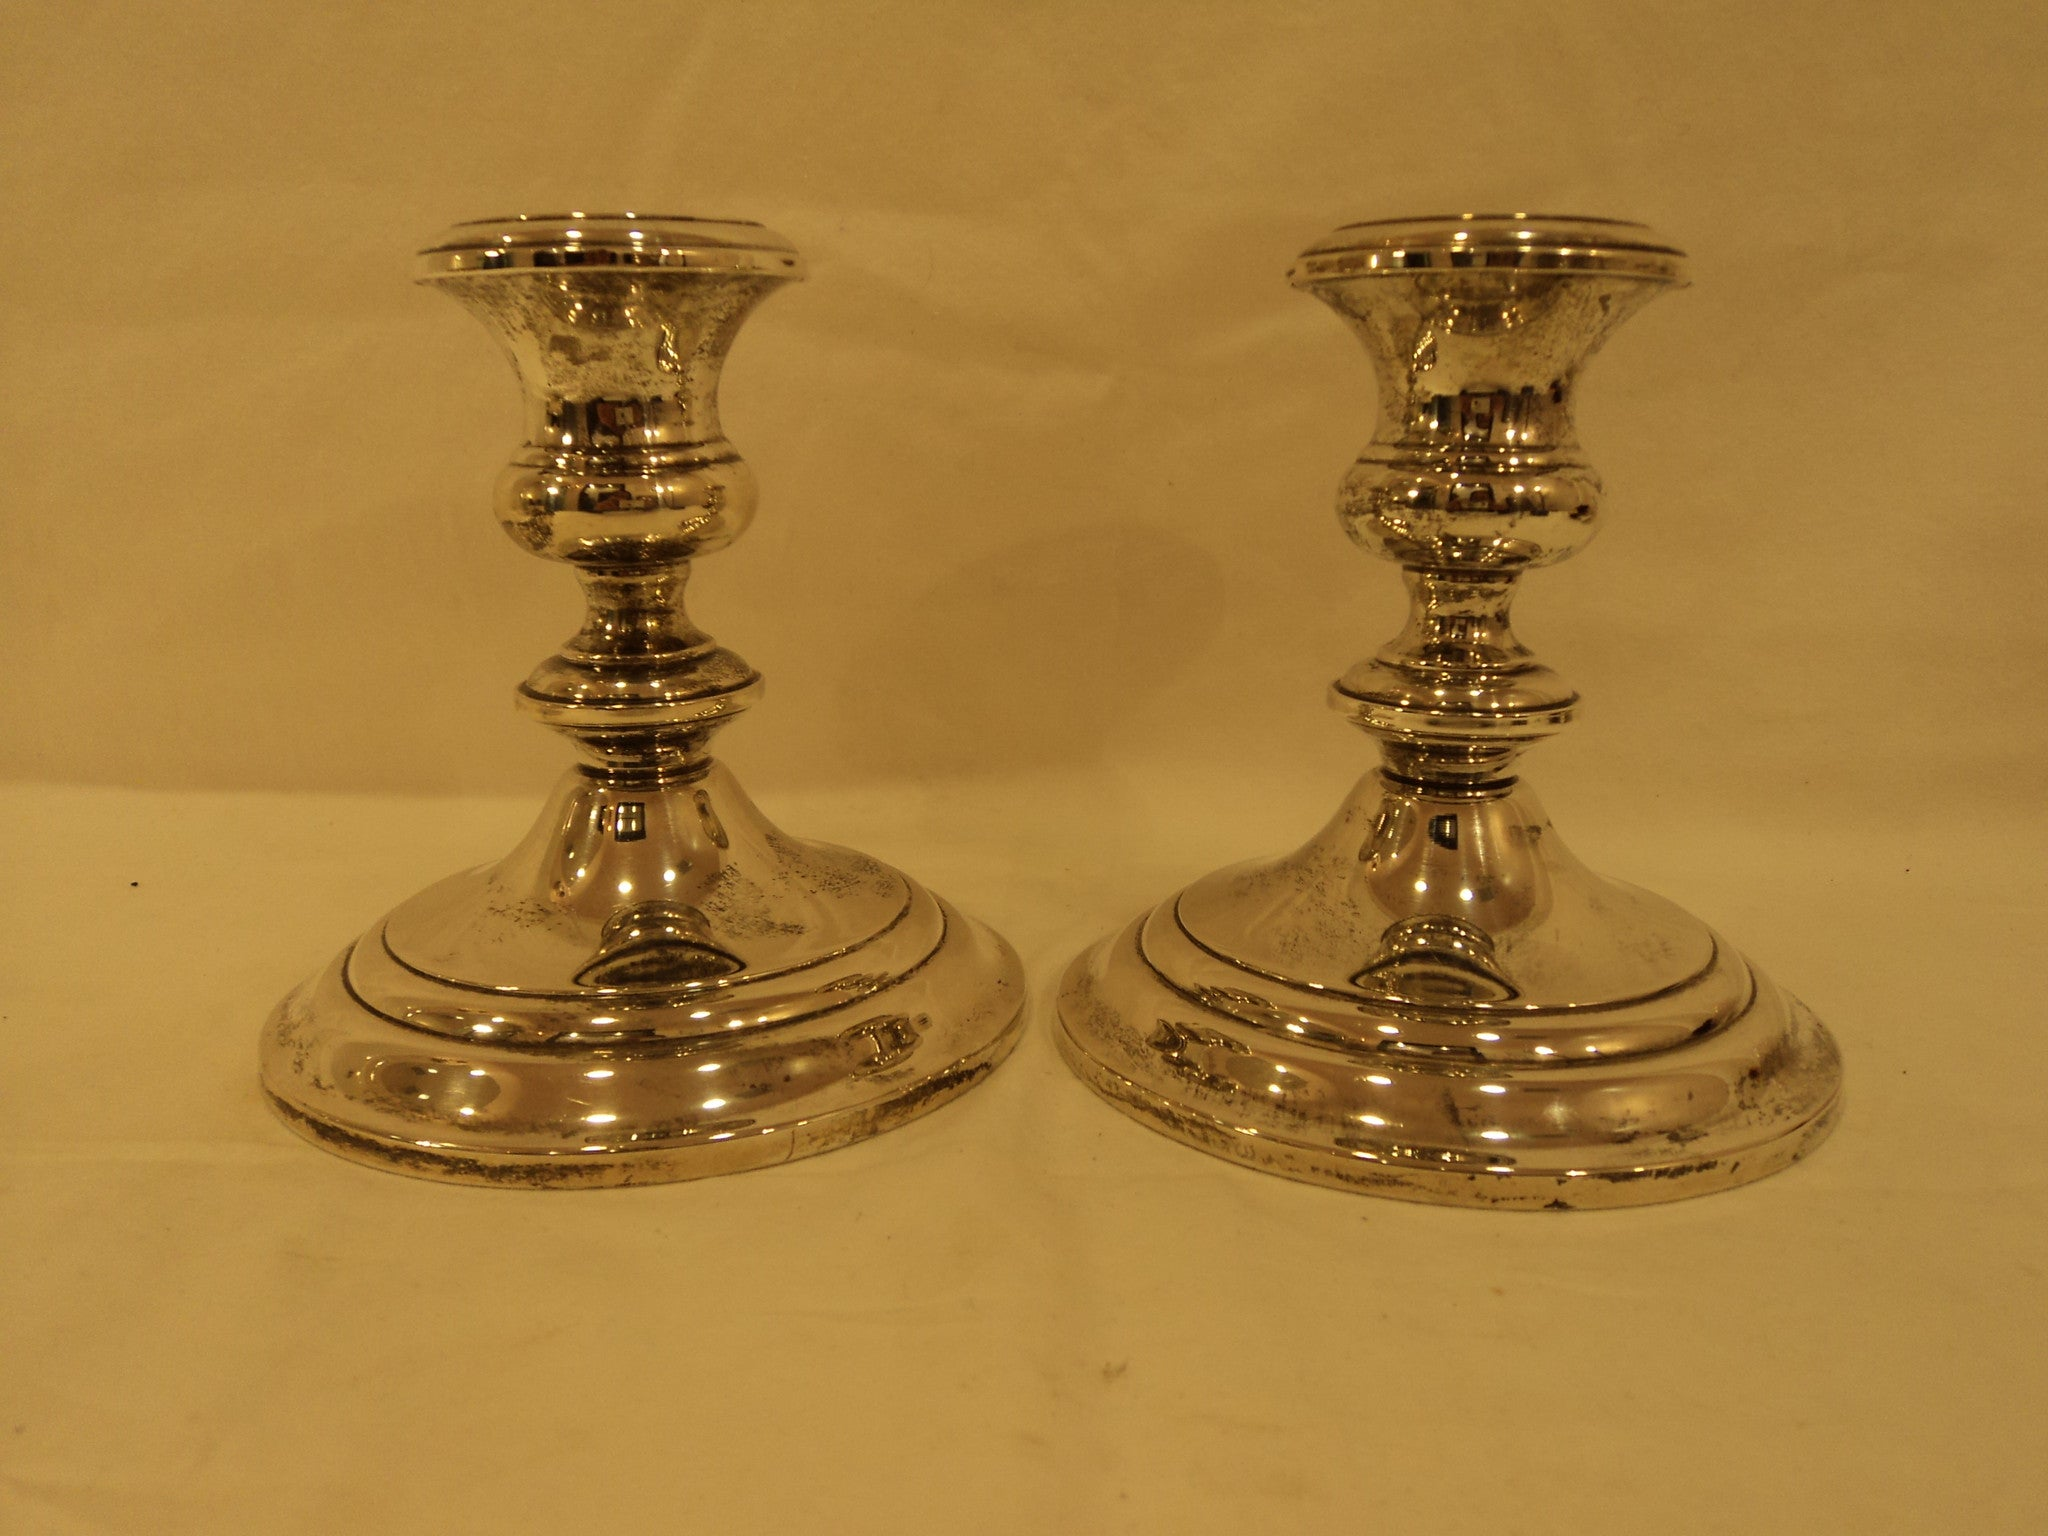 Weighted Sterling Silver Candlesticks 100217